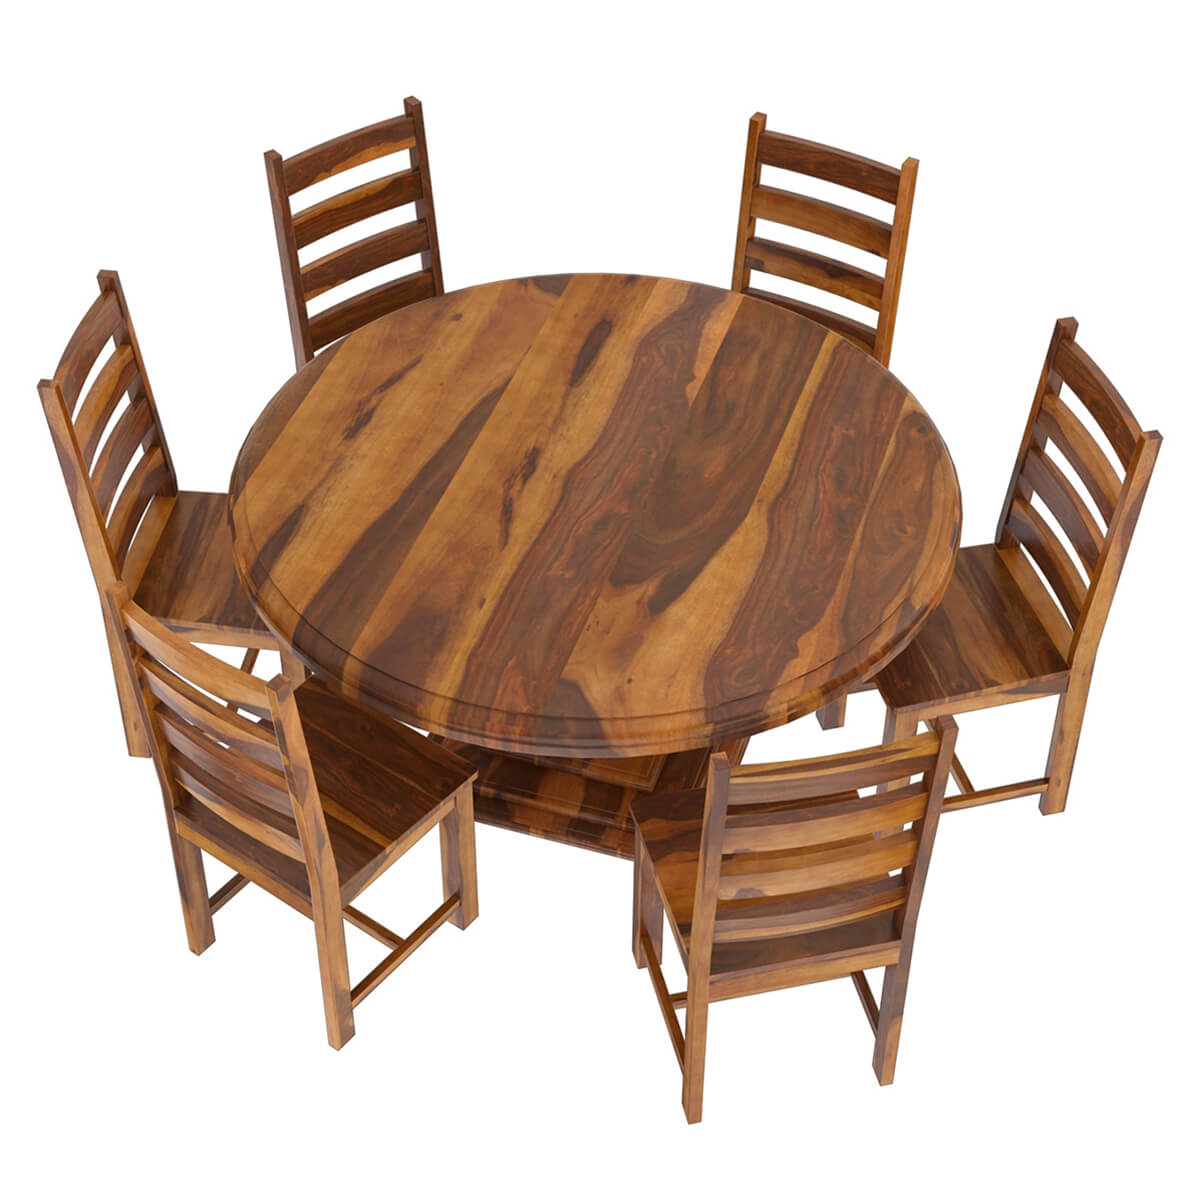 Solid Wood Dining Room Set: Cloverdale Solid Wood 8 Piece Round Dining Room Set